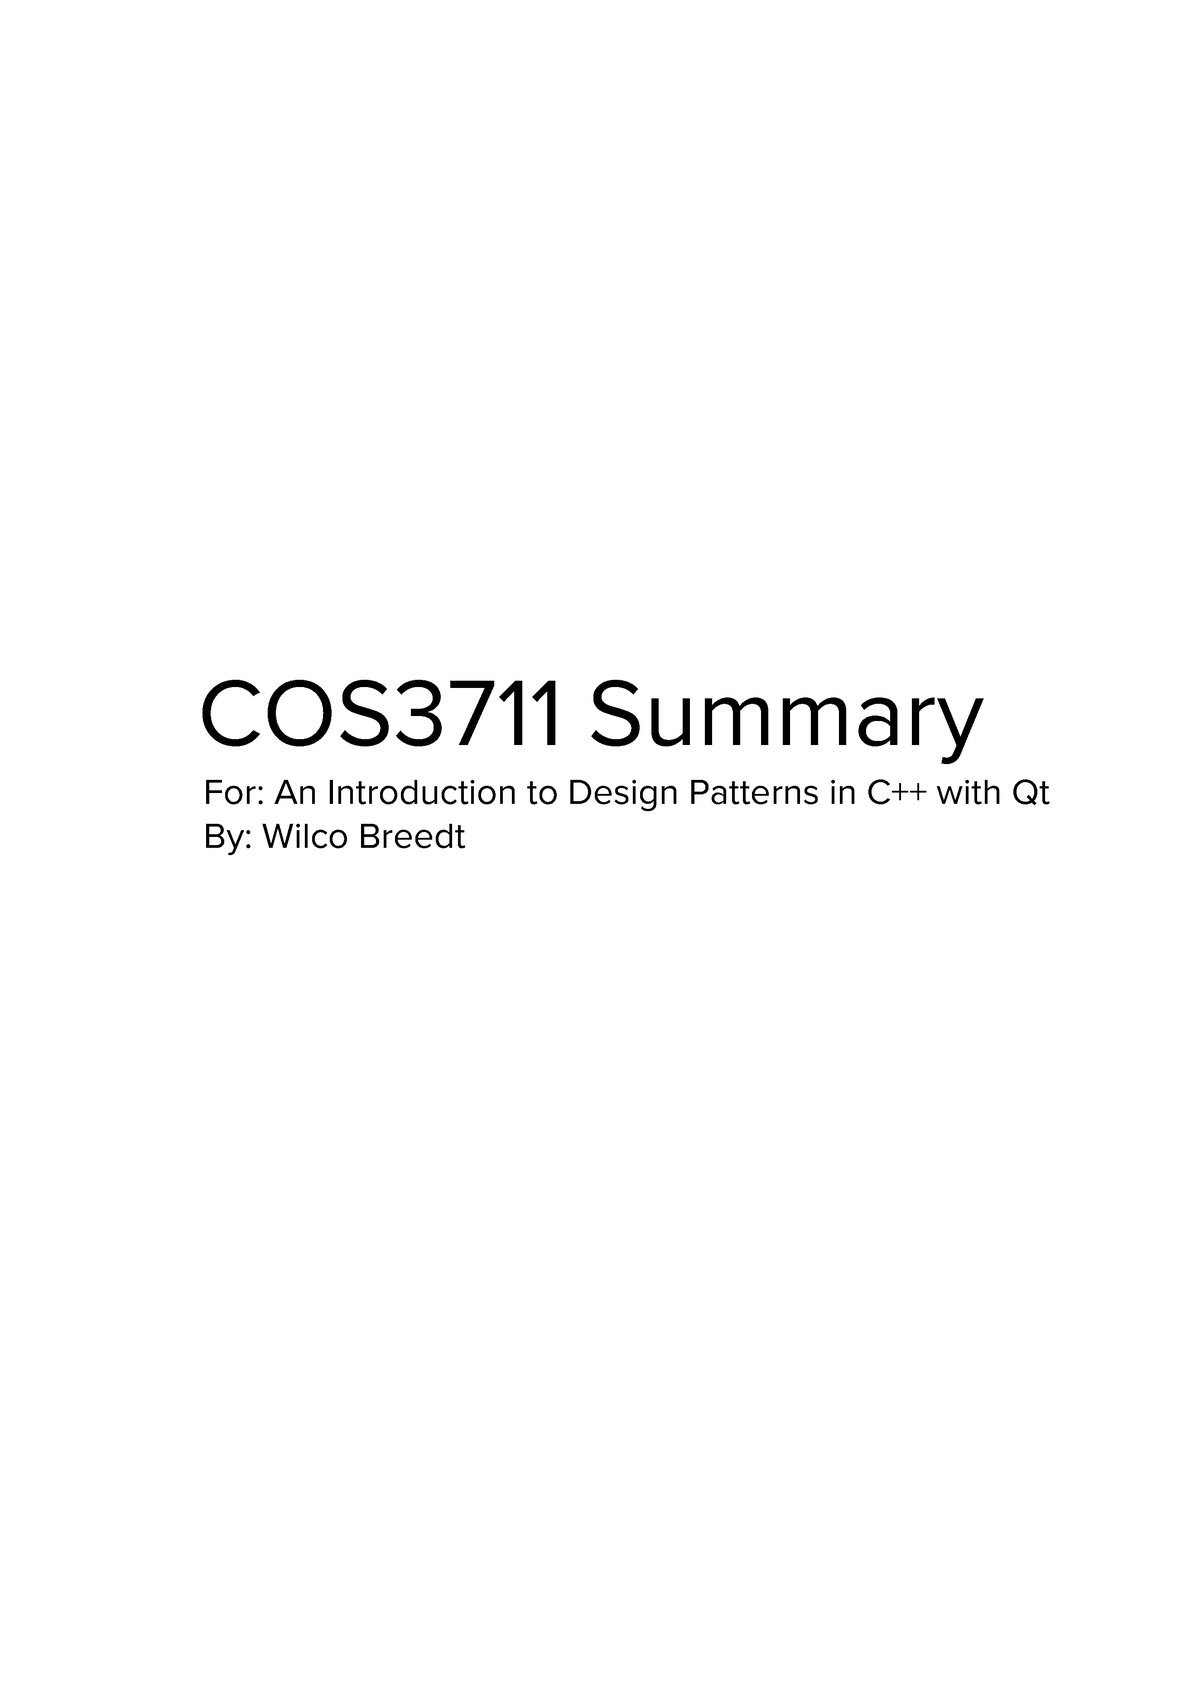 COS3711 Summary - An Introduction to Design Patterns in C++ - StuDocu